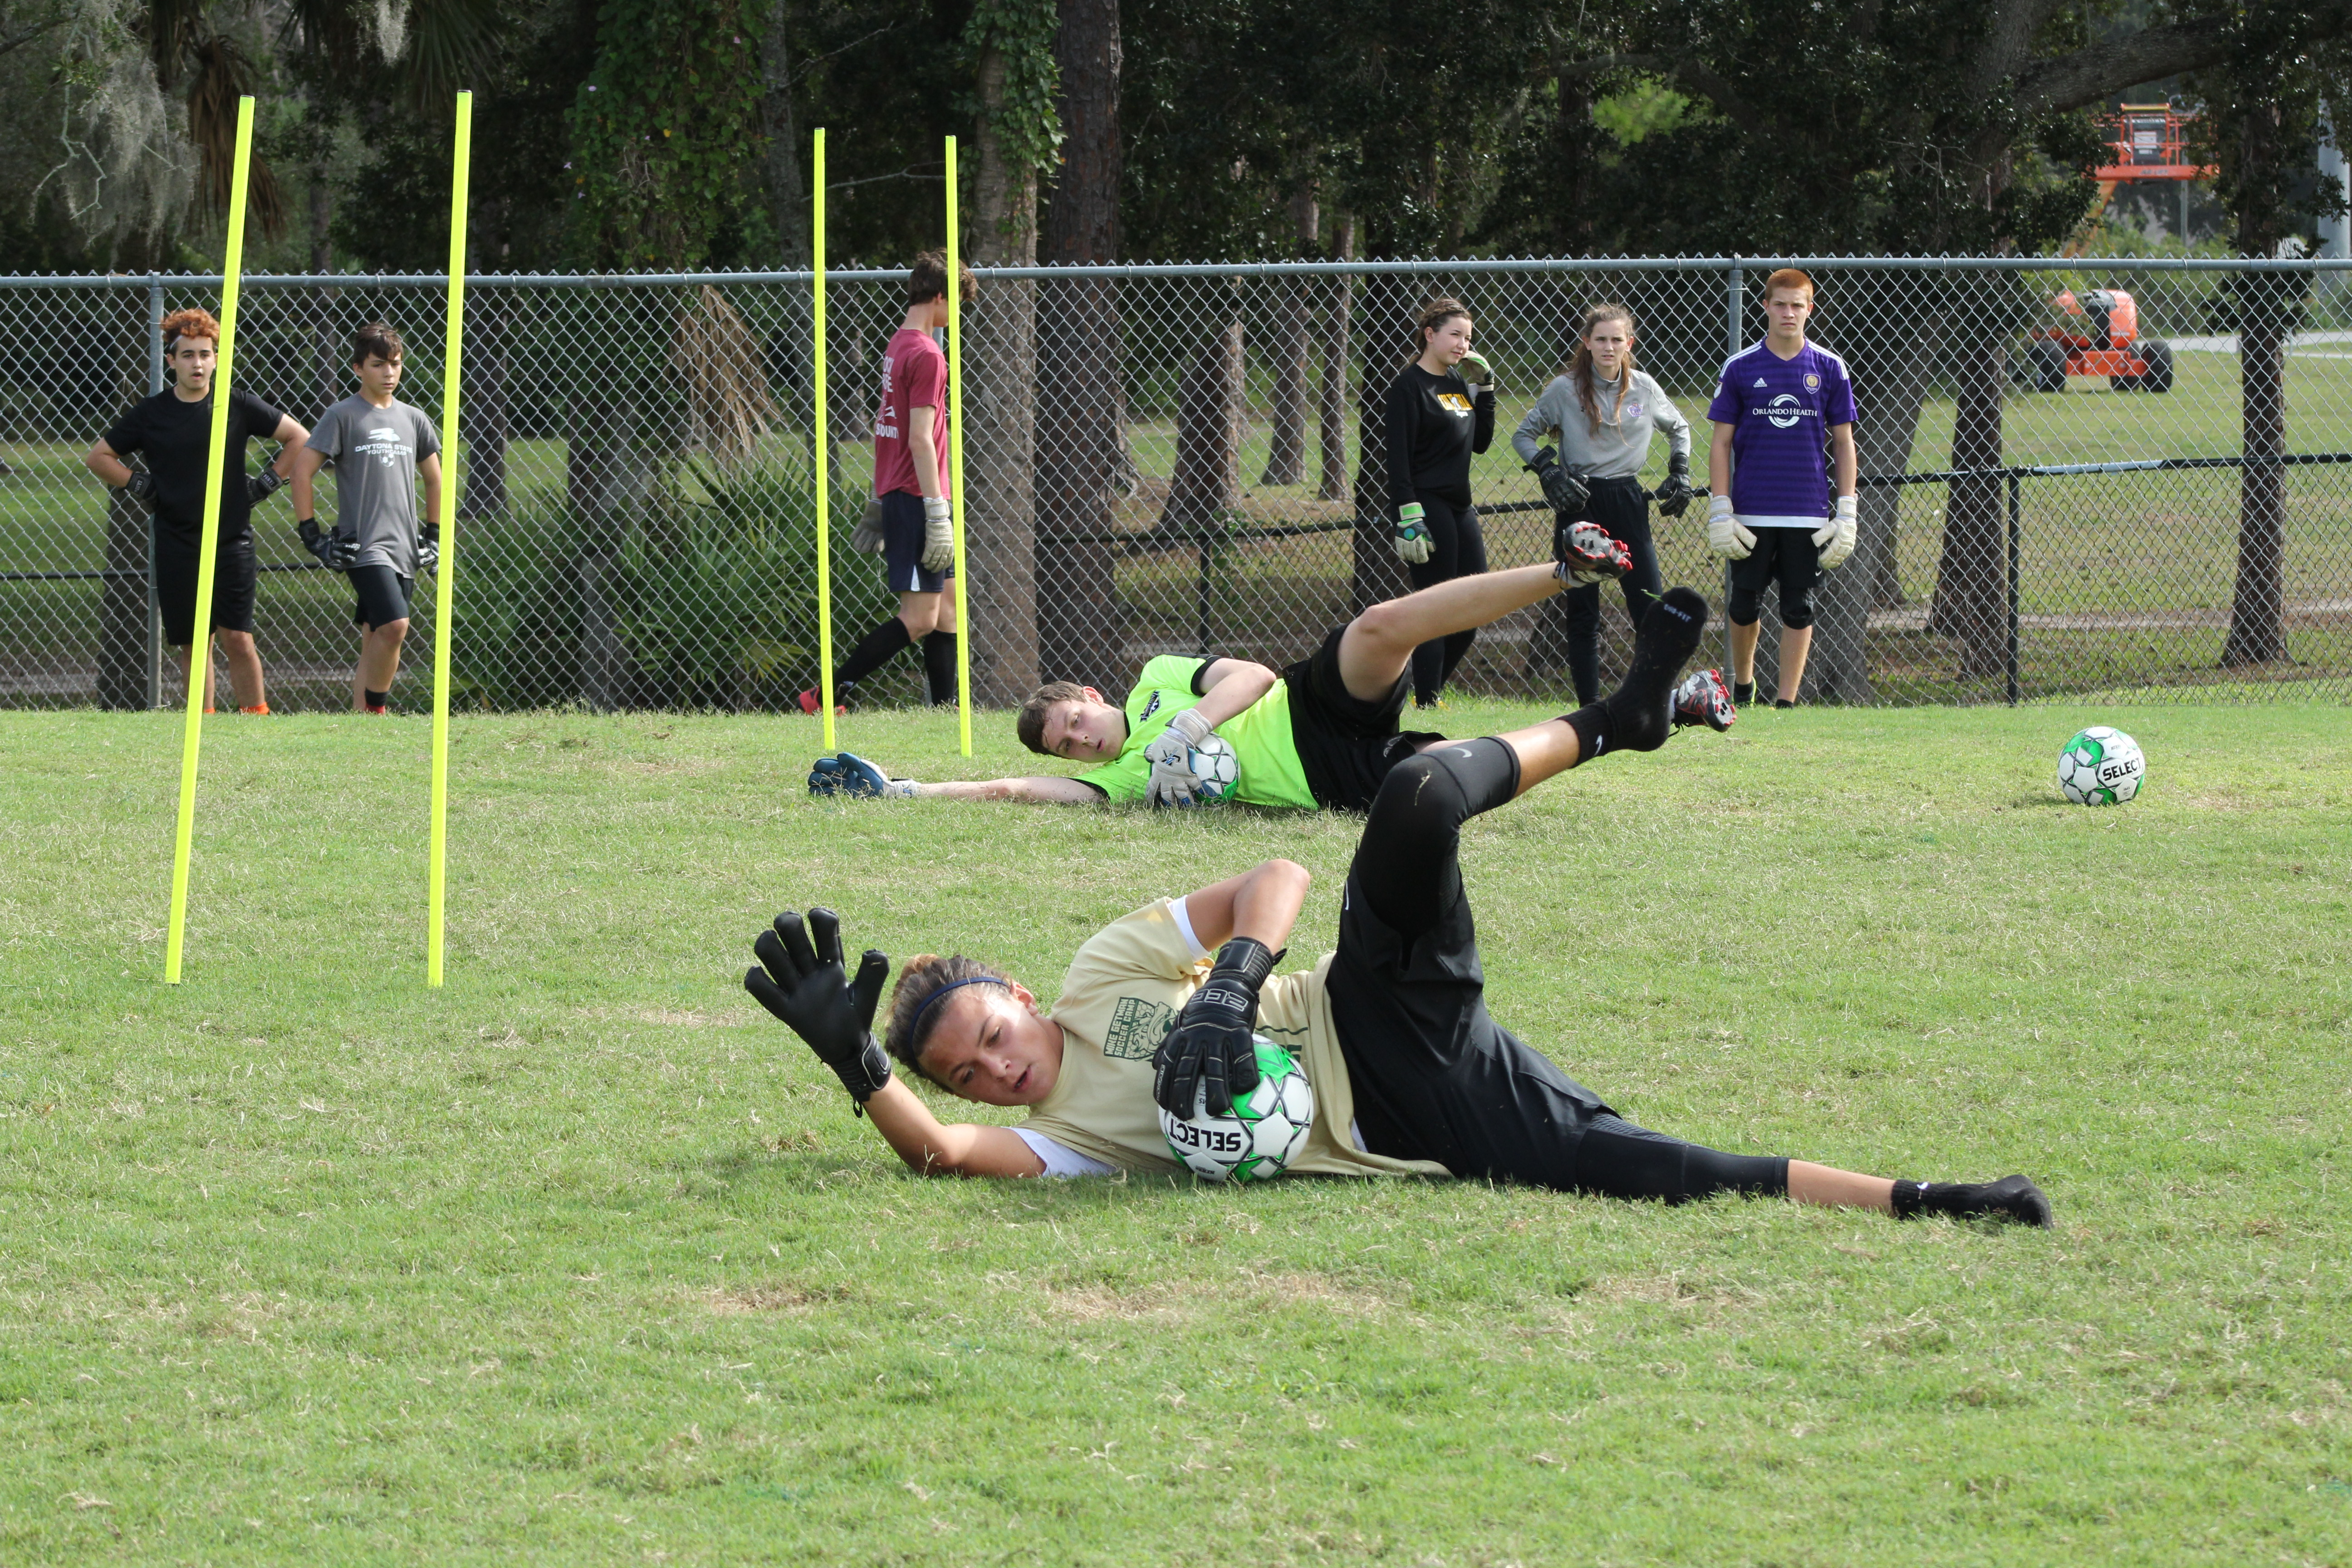 Become a college goalkeeper